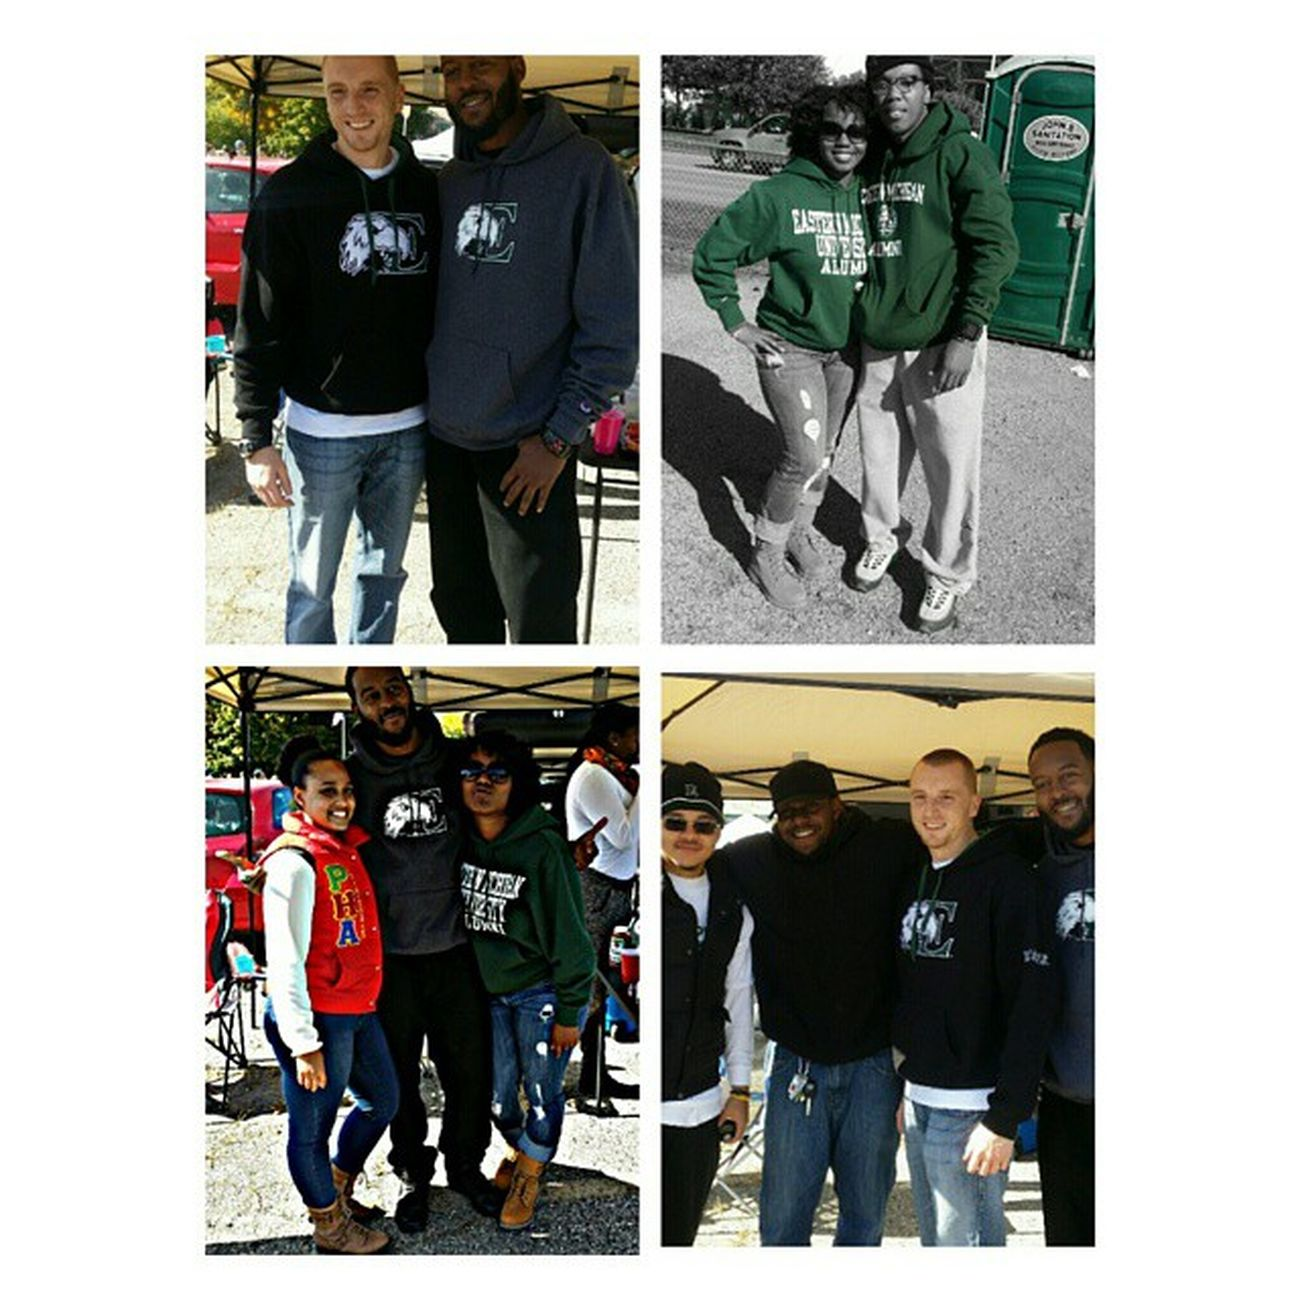 A few pics from homecoming tail gate! @c_eazy84 Tag Dani! Great time, with great people! Emu Emuhomecoming Weactuallywonthegametoo EasternMichigan